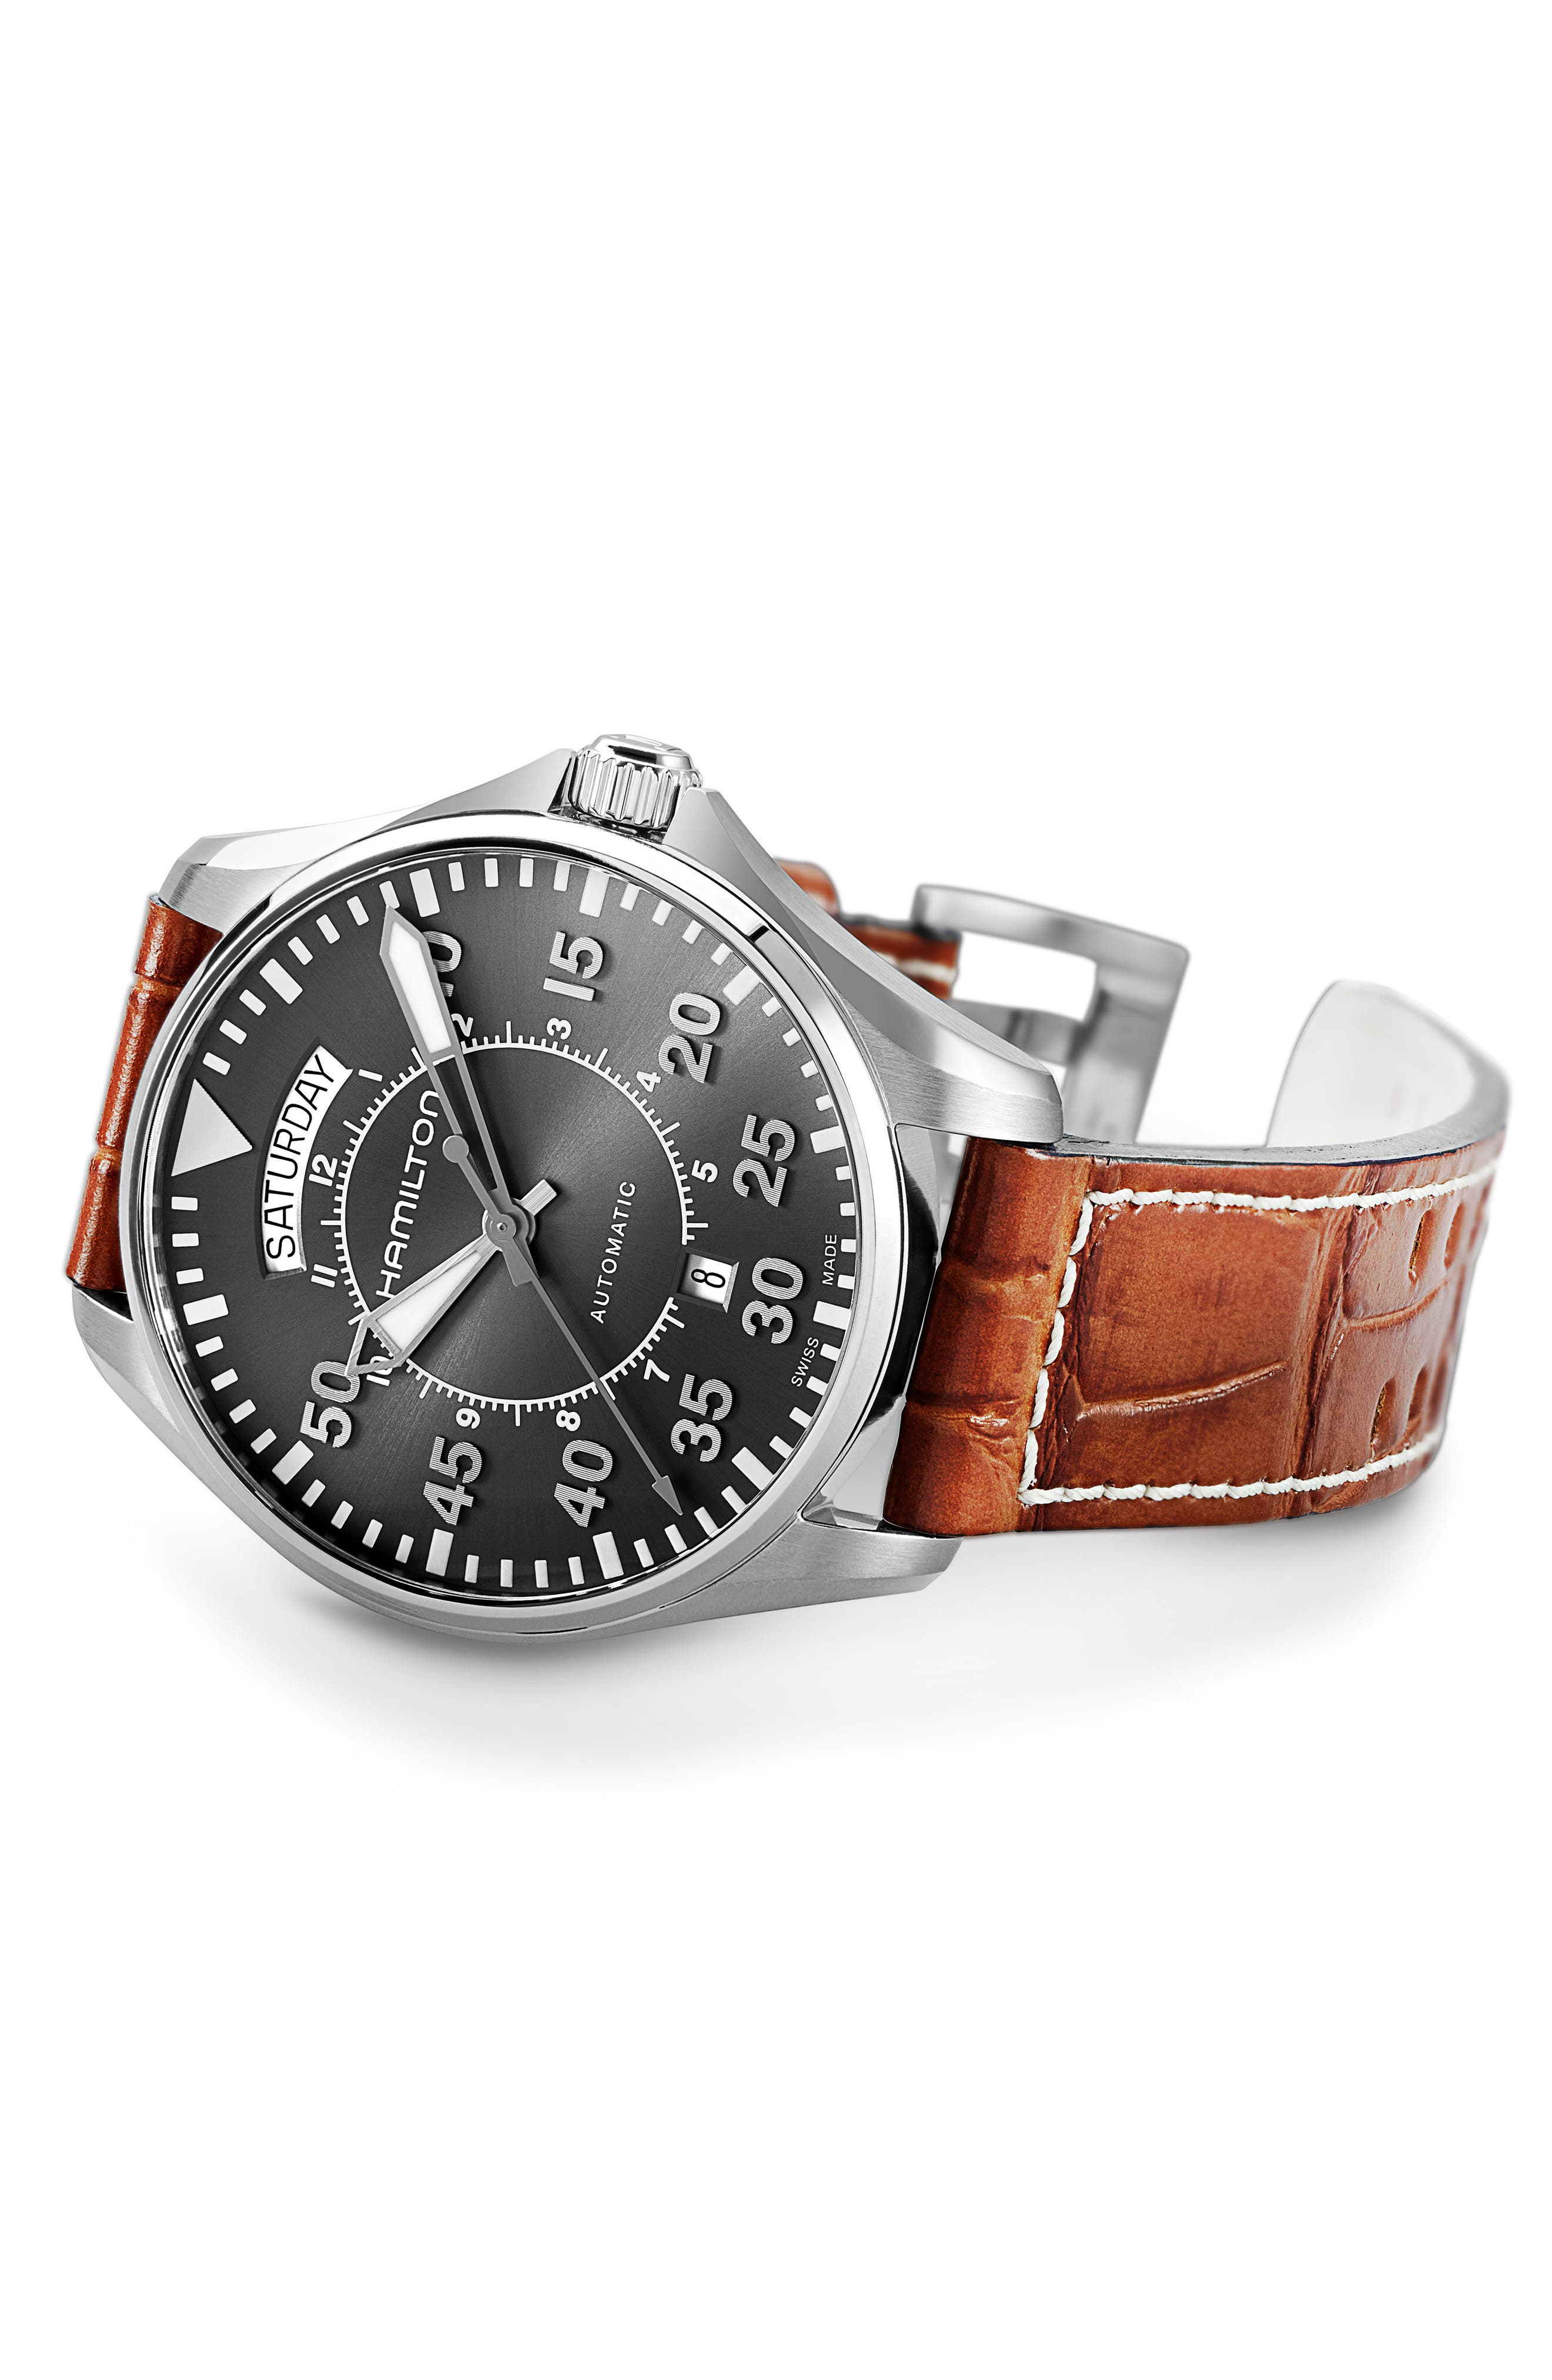 Khaki Pilot Automatic Leather Strap Watch, 42mm,                             Alternate thumbnail 3, color,                             BROWN/ GREY/ SILVER